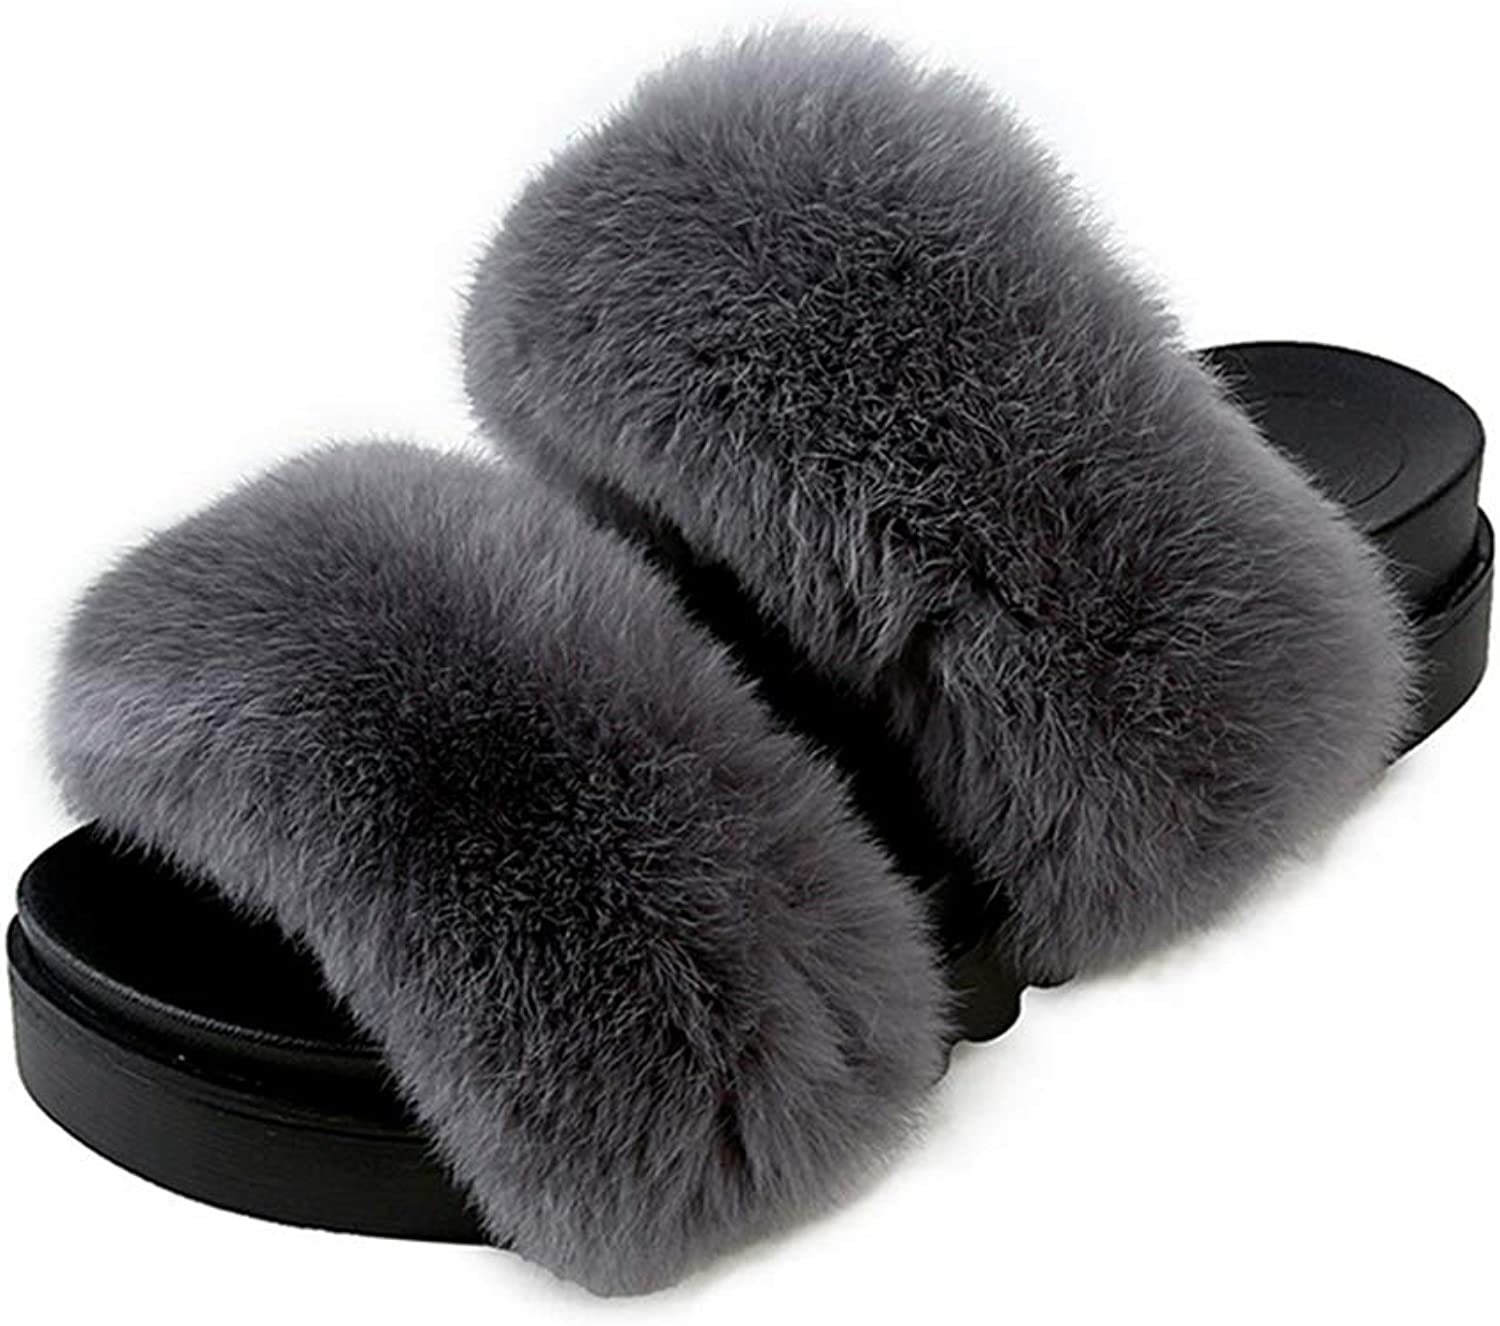 NOMIMAS Winter Warm Fur Women Home Fluffy Slippers Platform Slippers Open Toe Indoor Slipper shoes Woman